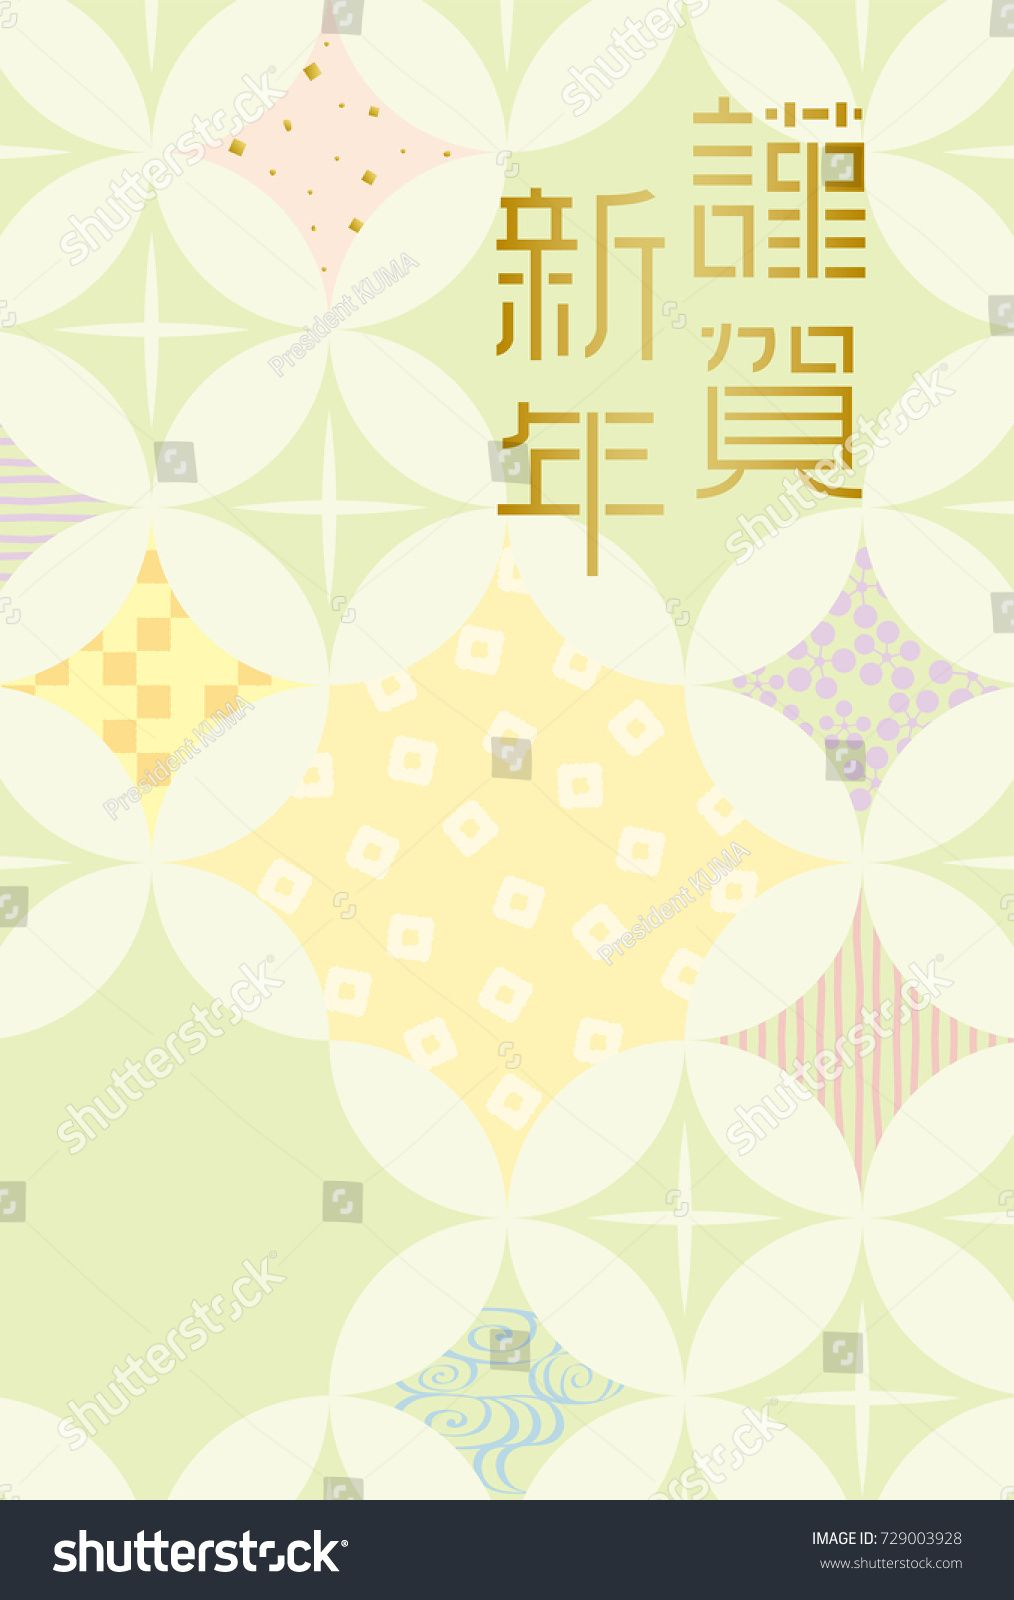 Japanese New Year S Card Japanese Traditional Pattern Background In Japanese It Is Written Happy New Y Japanese New Year New Year Card Japanese Traditional